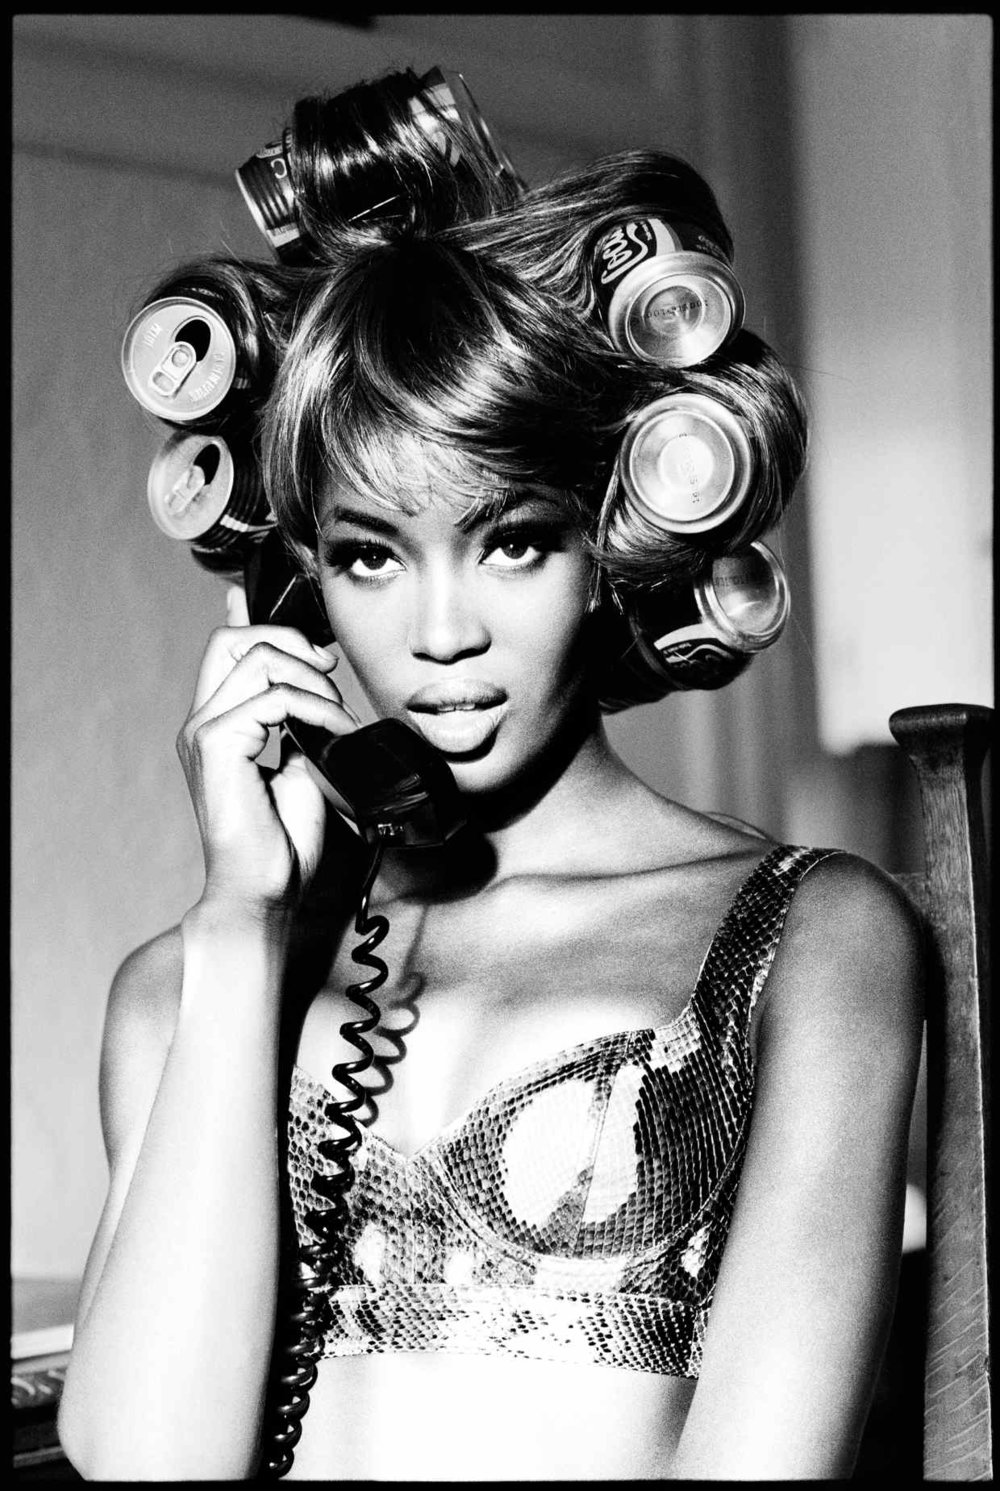 Naomi's Rollers, Naomi Campbell, Interview Magazine, Los Angeles, 1991; black & white print on baryte paper, 100cm x 70cm, £16,800